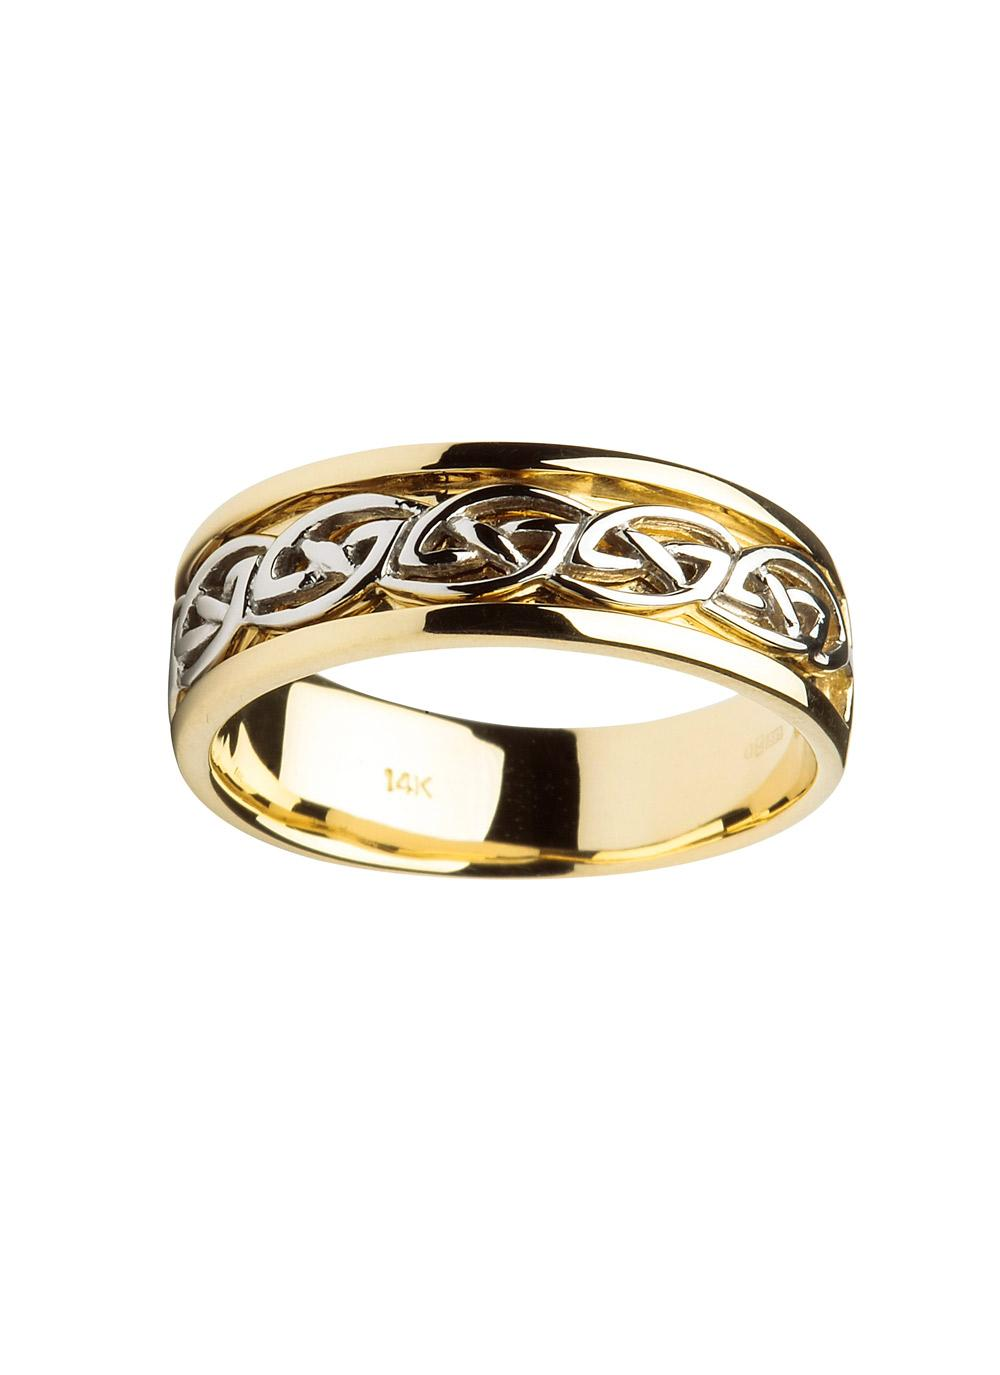 gents 14k gold celtic knot wedding ring - Celtic Knot Wedding Rings